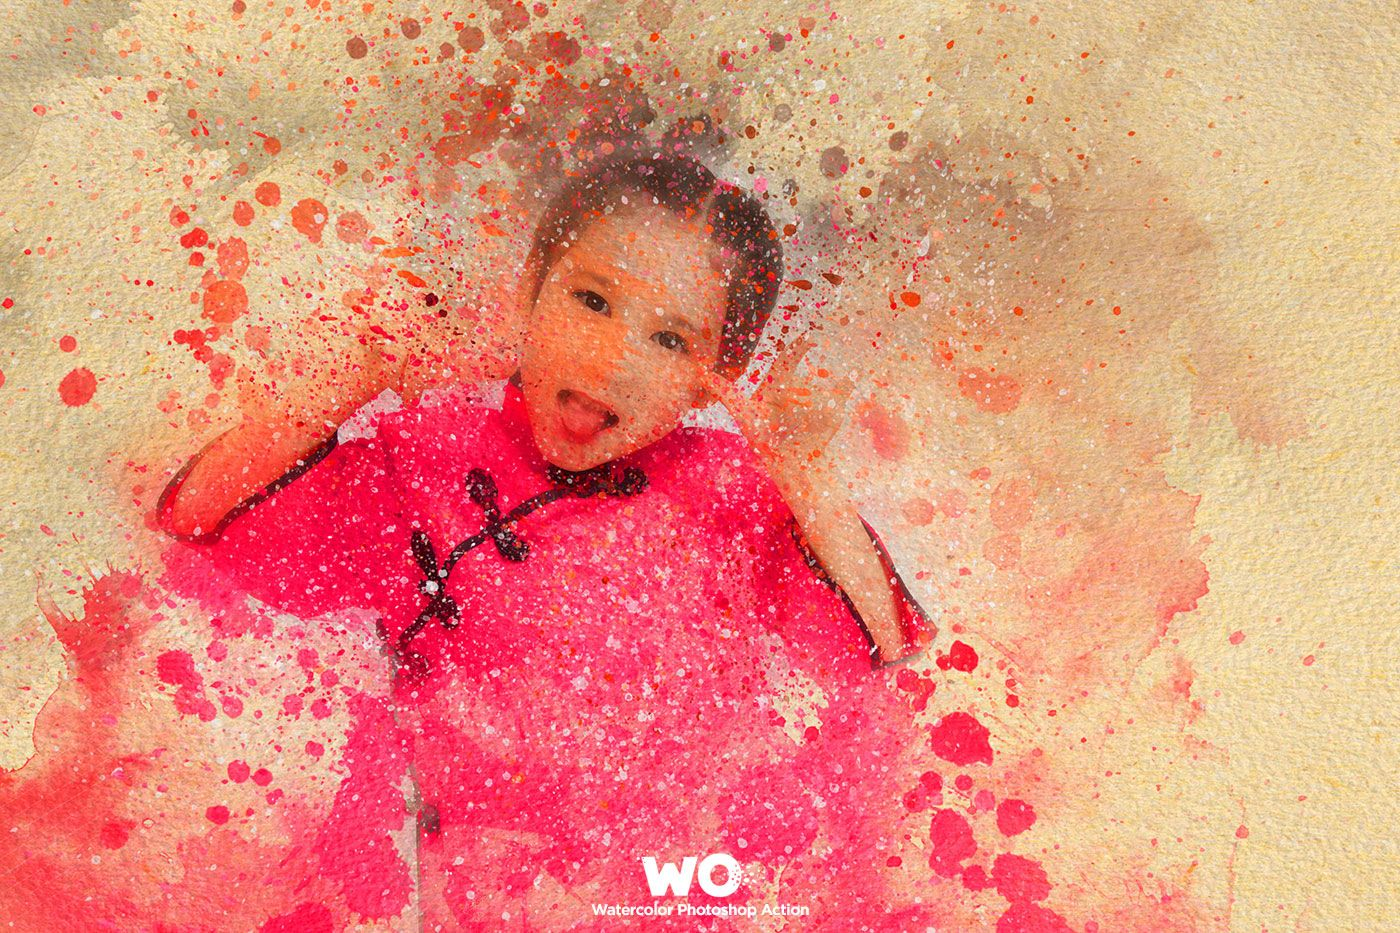 Wo Watercolor Photoshop Action Watercolor Photoshop Action